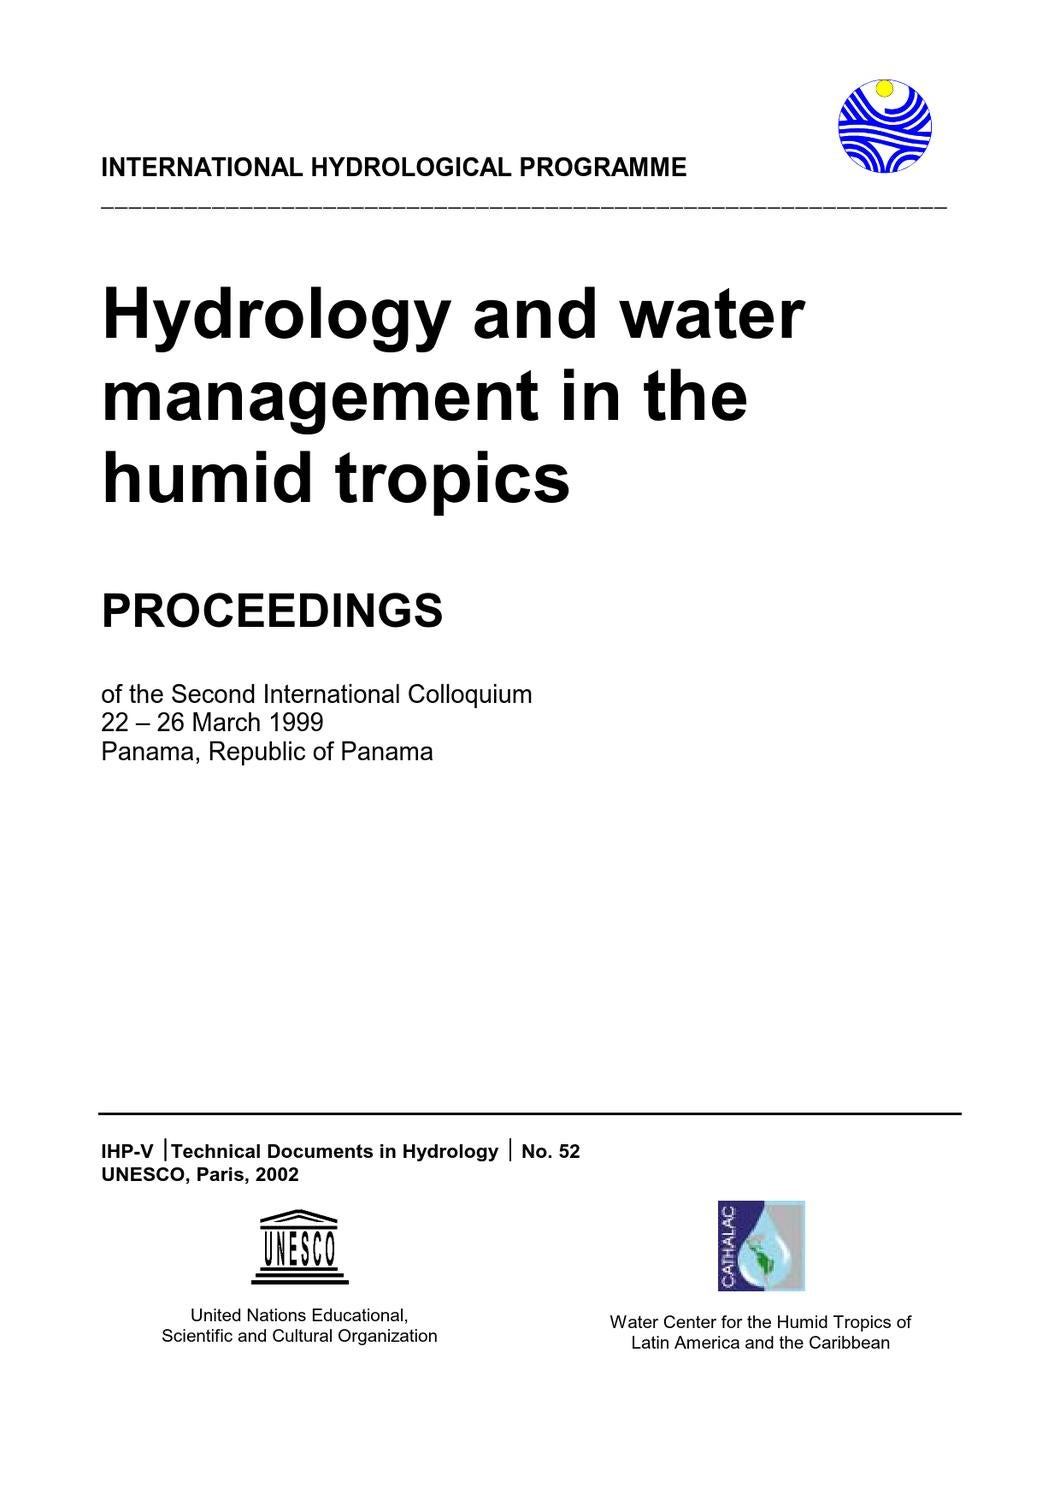 Cash Pooling Y Precios De Transferencia Hydrology And Water Management In The Humid Tropics By